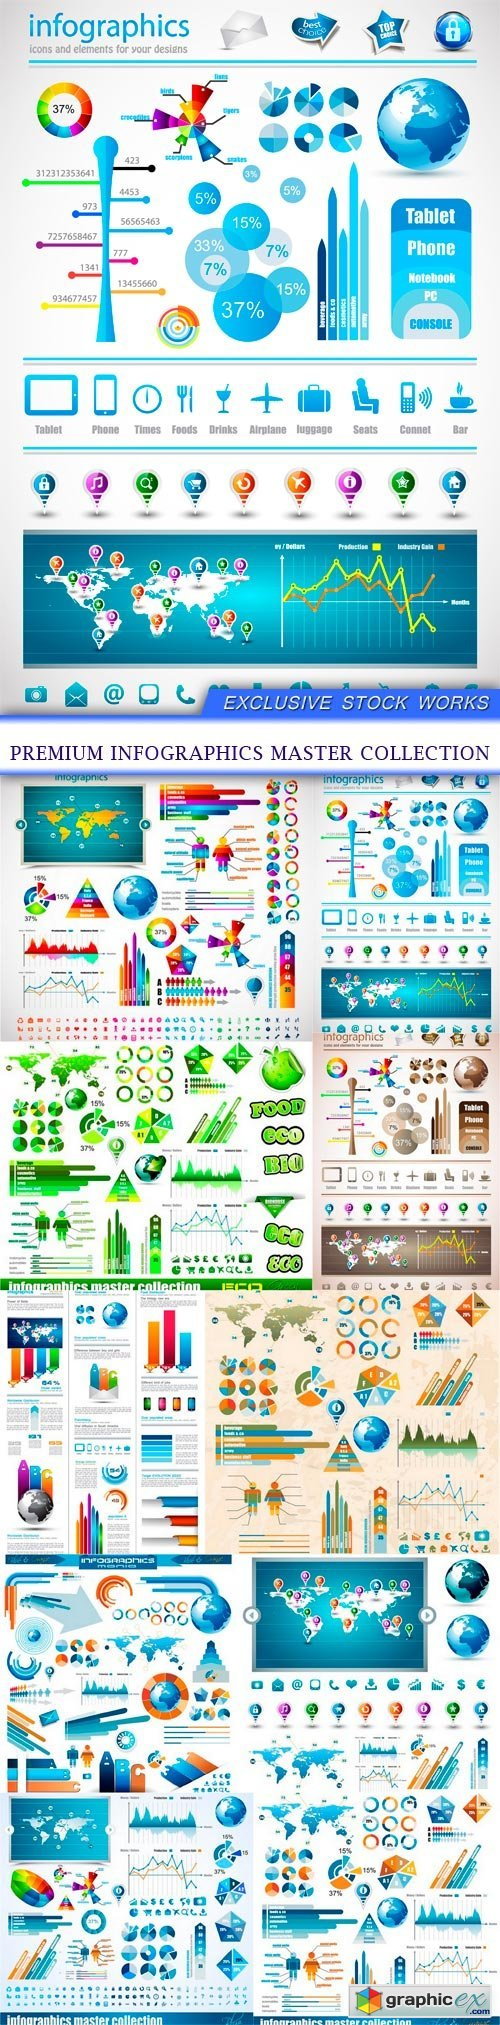 Bussiness and infographic page 32 free download vector stock premium infographics master collection 10x eps gumiabroncs Choice Image